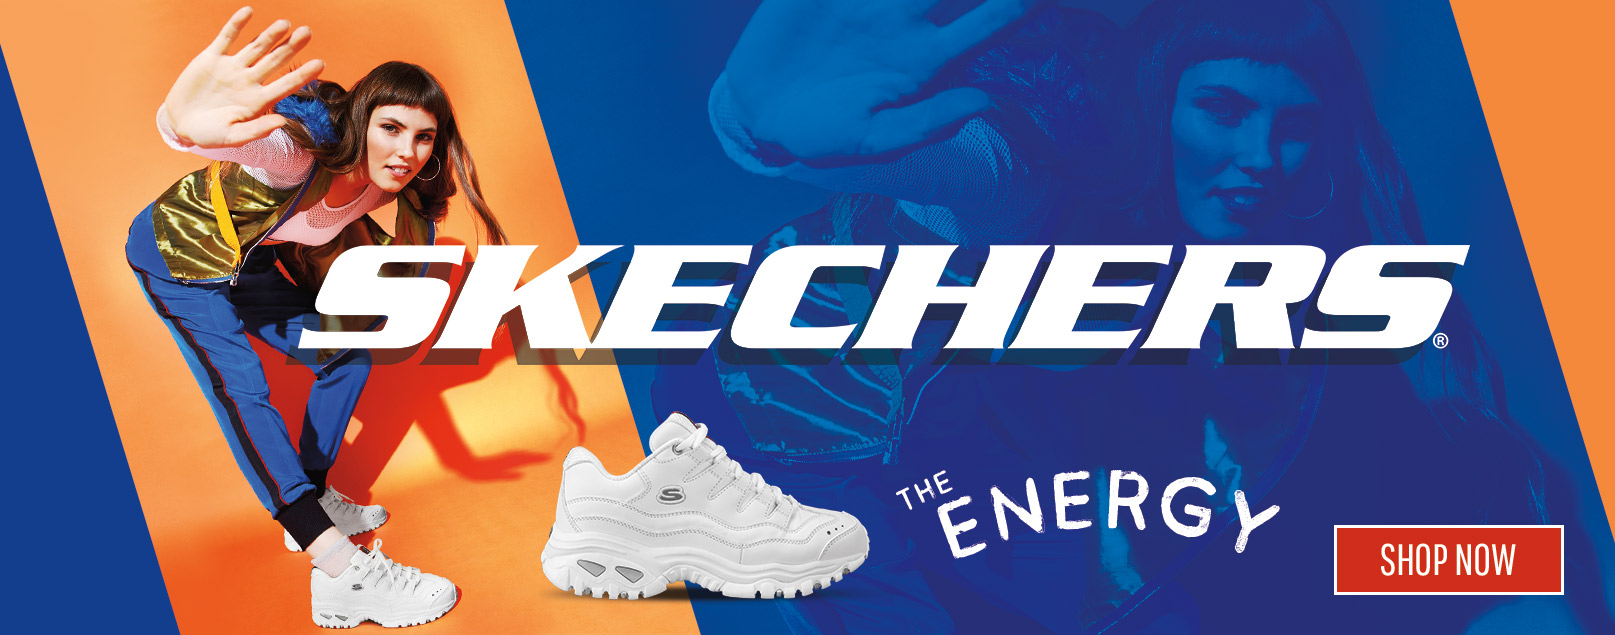 8750a73299c5 Skechers.com Canada - Find the best selection of Skechers Shoes ...